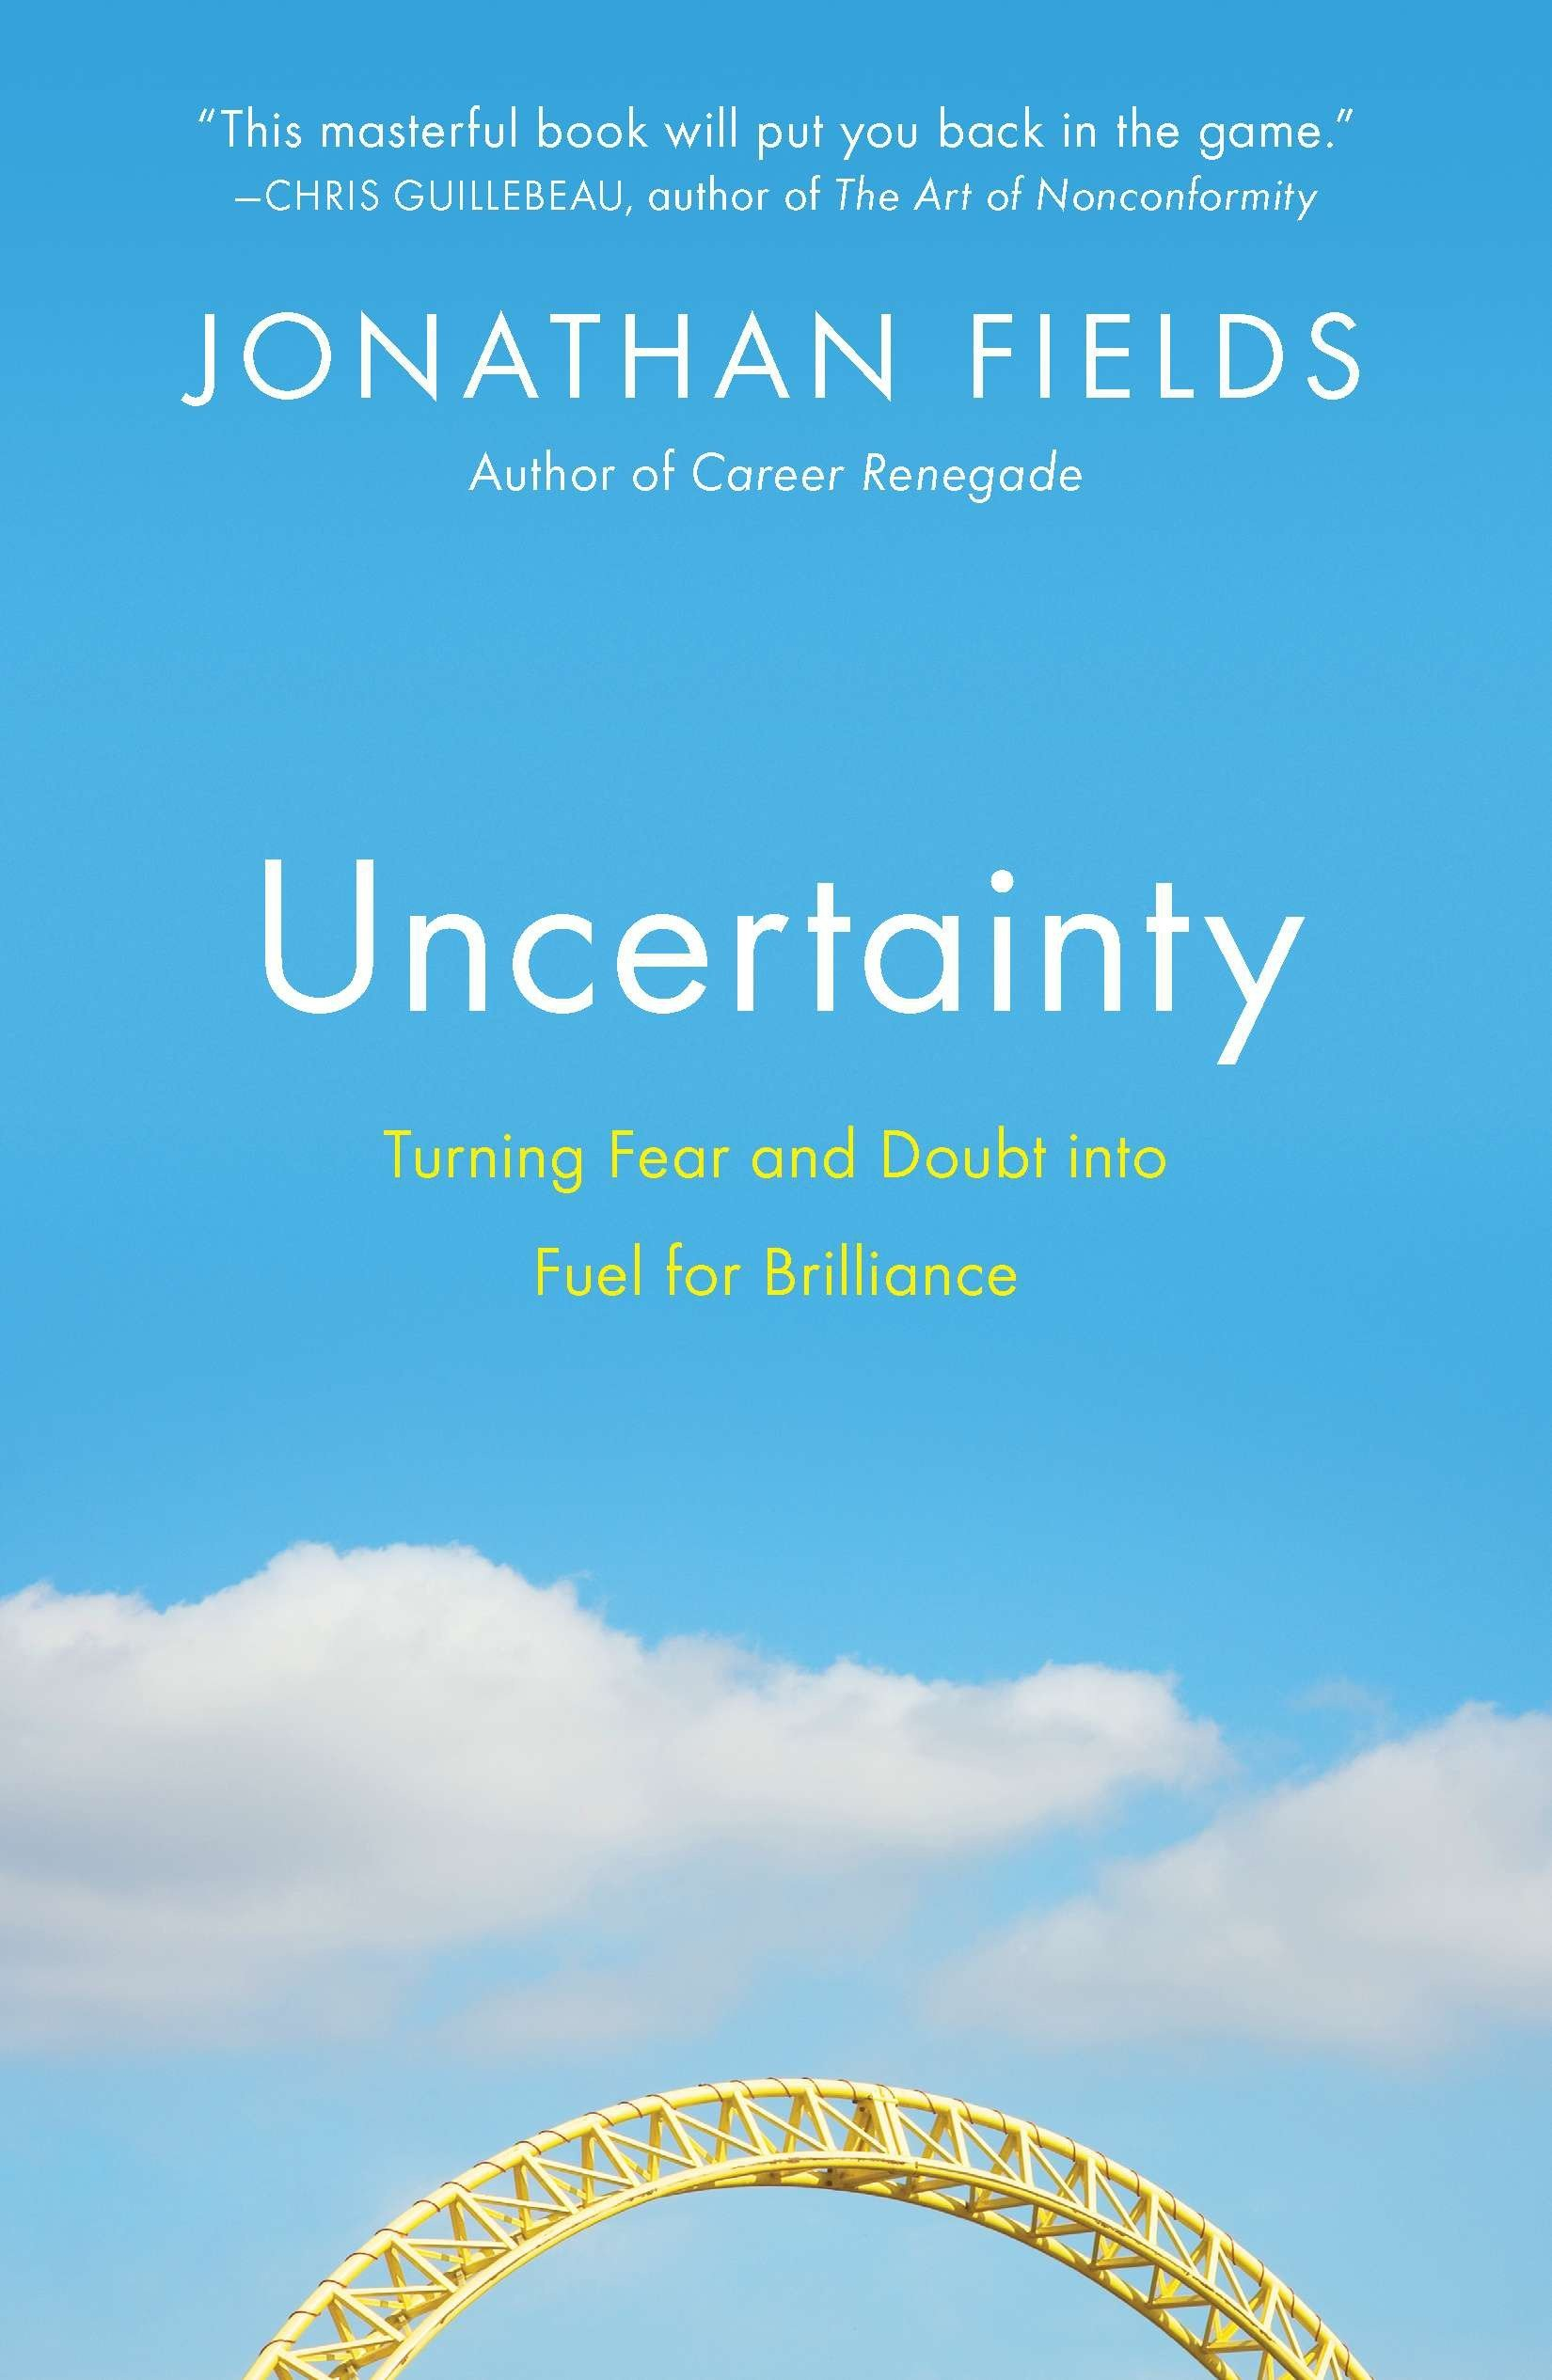 Image result for Uncertainty book